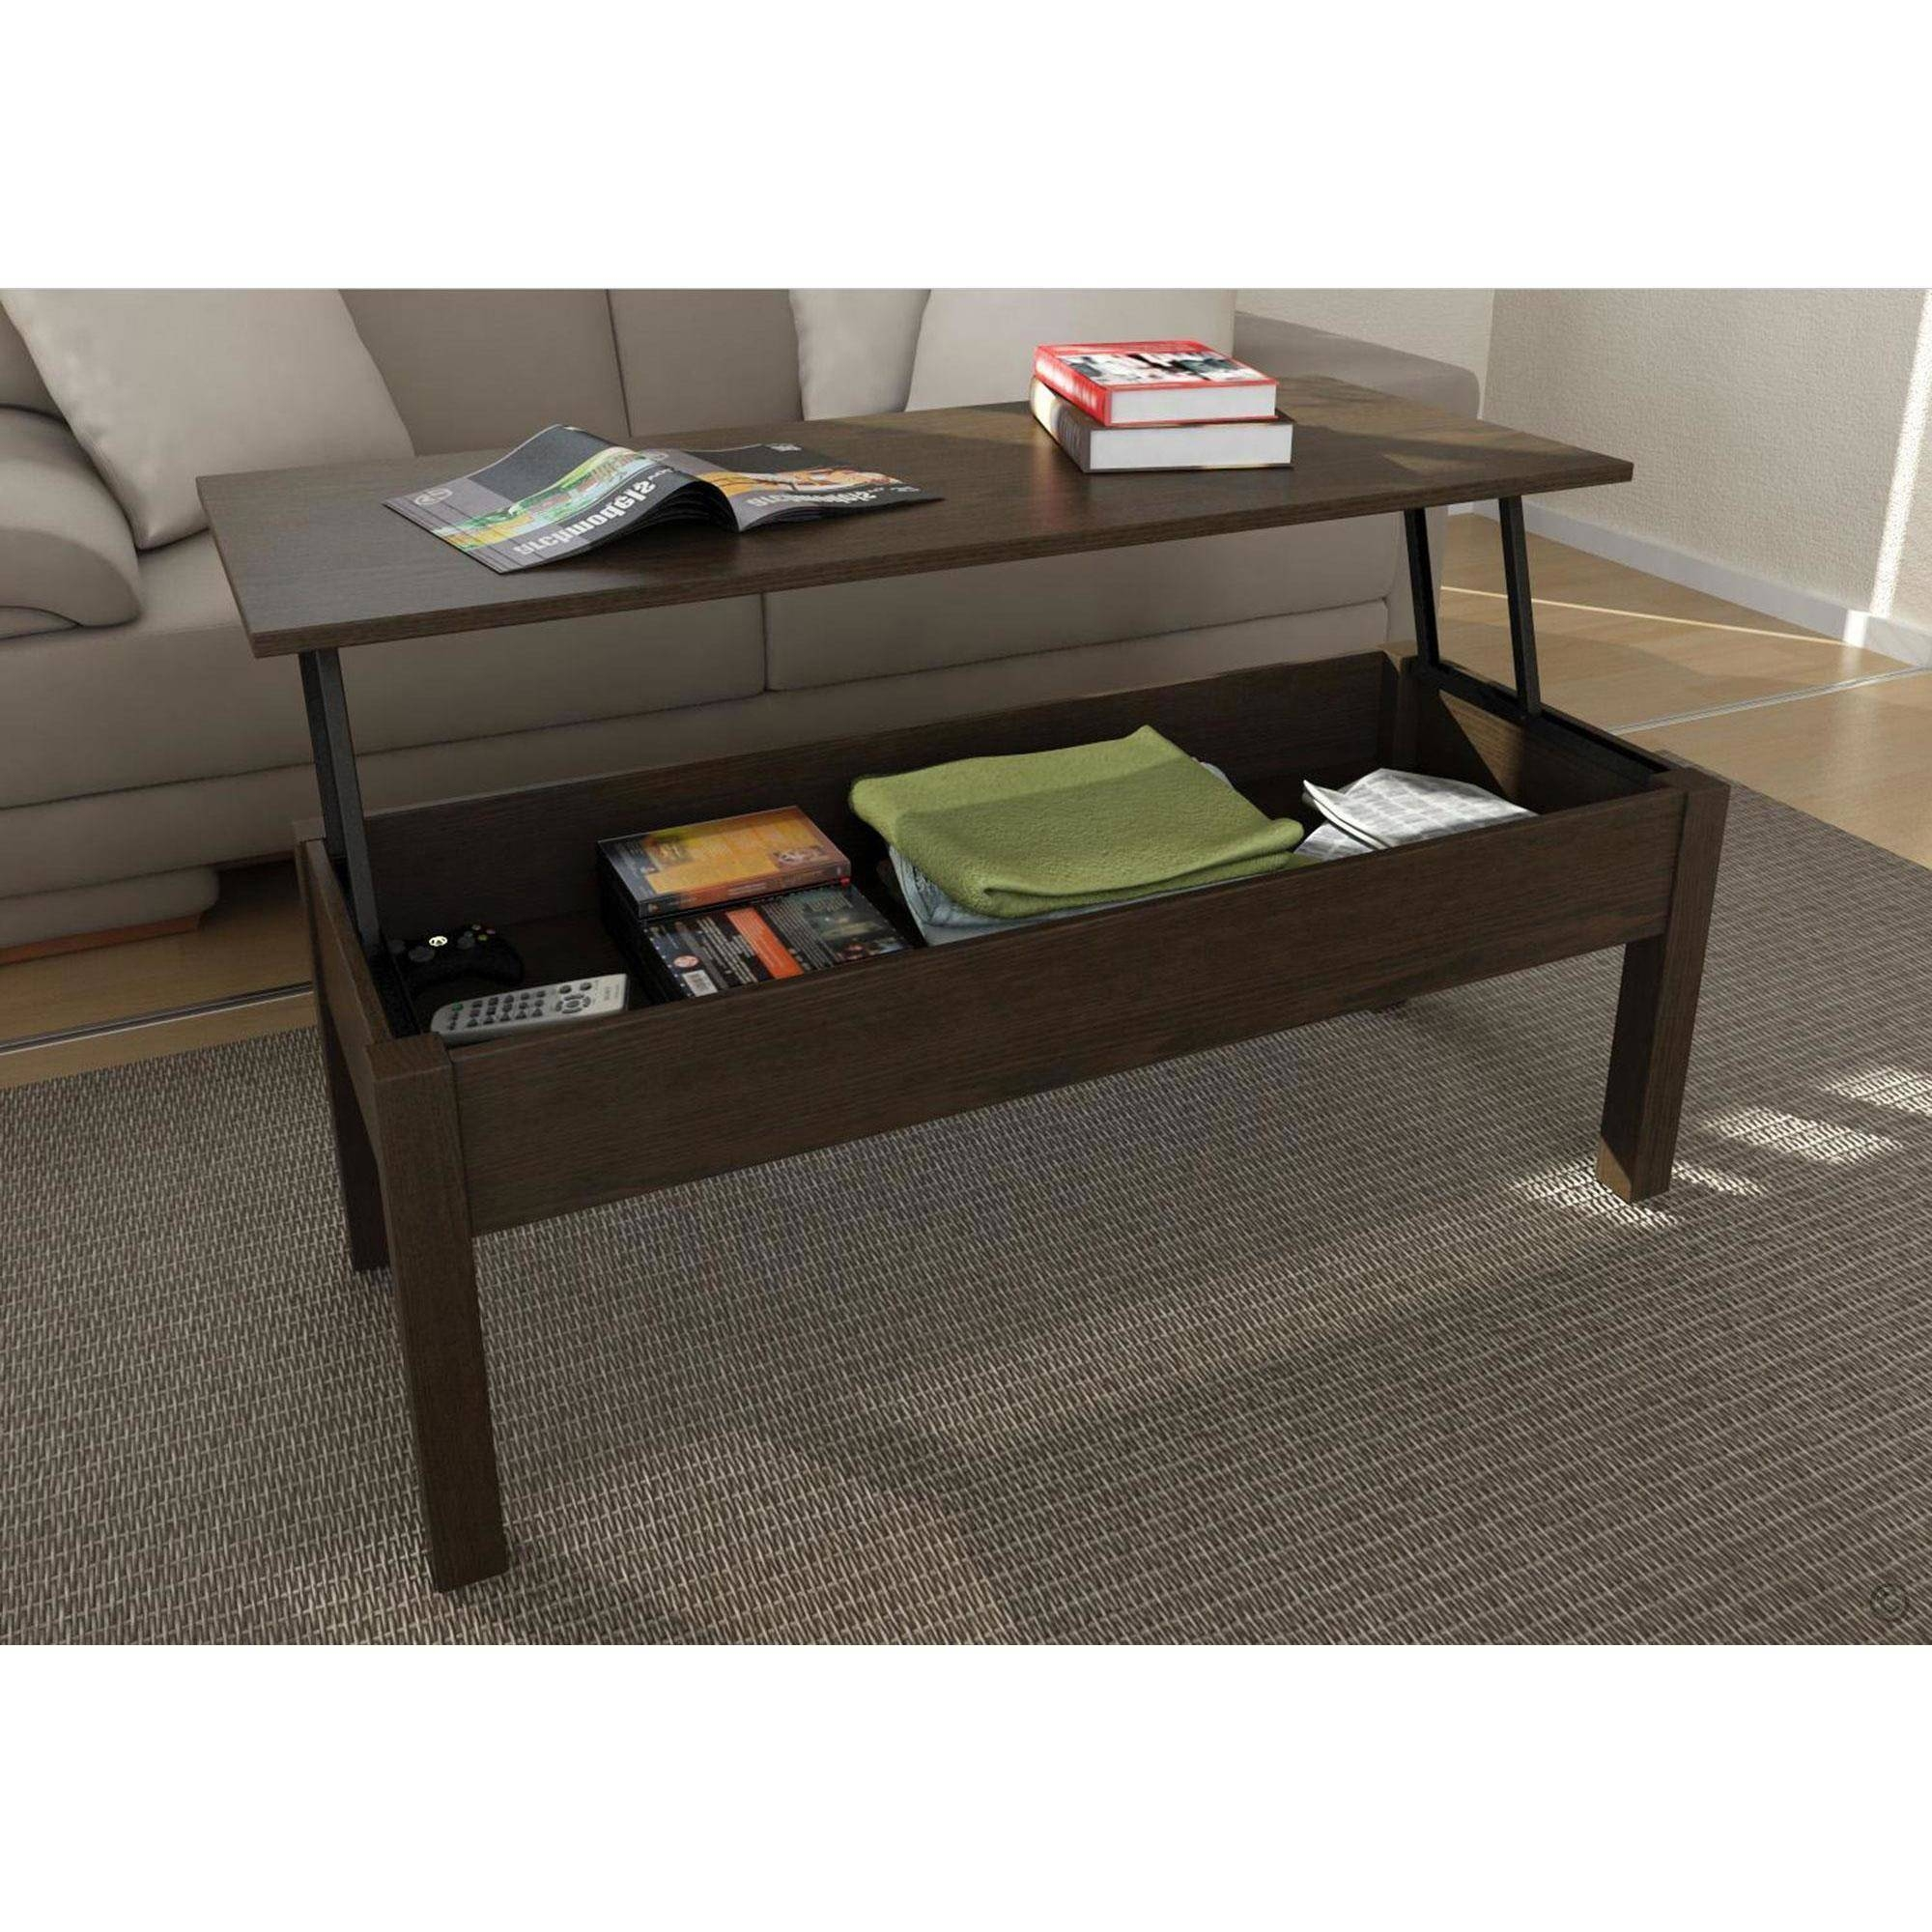 Mainstays Lift-Top Coffee Table, Multiple Colors - Walmart for Cheap Lift Top Coffee Tables (Image 15 of 30)